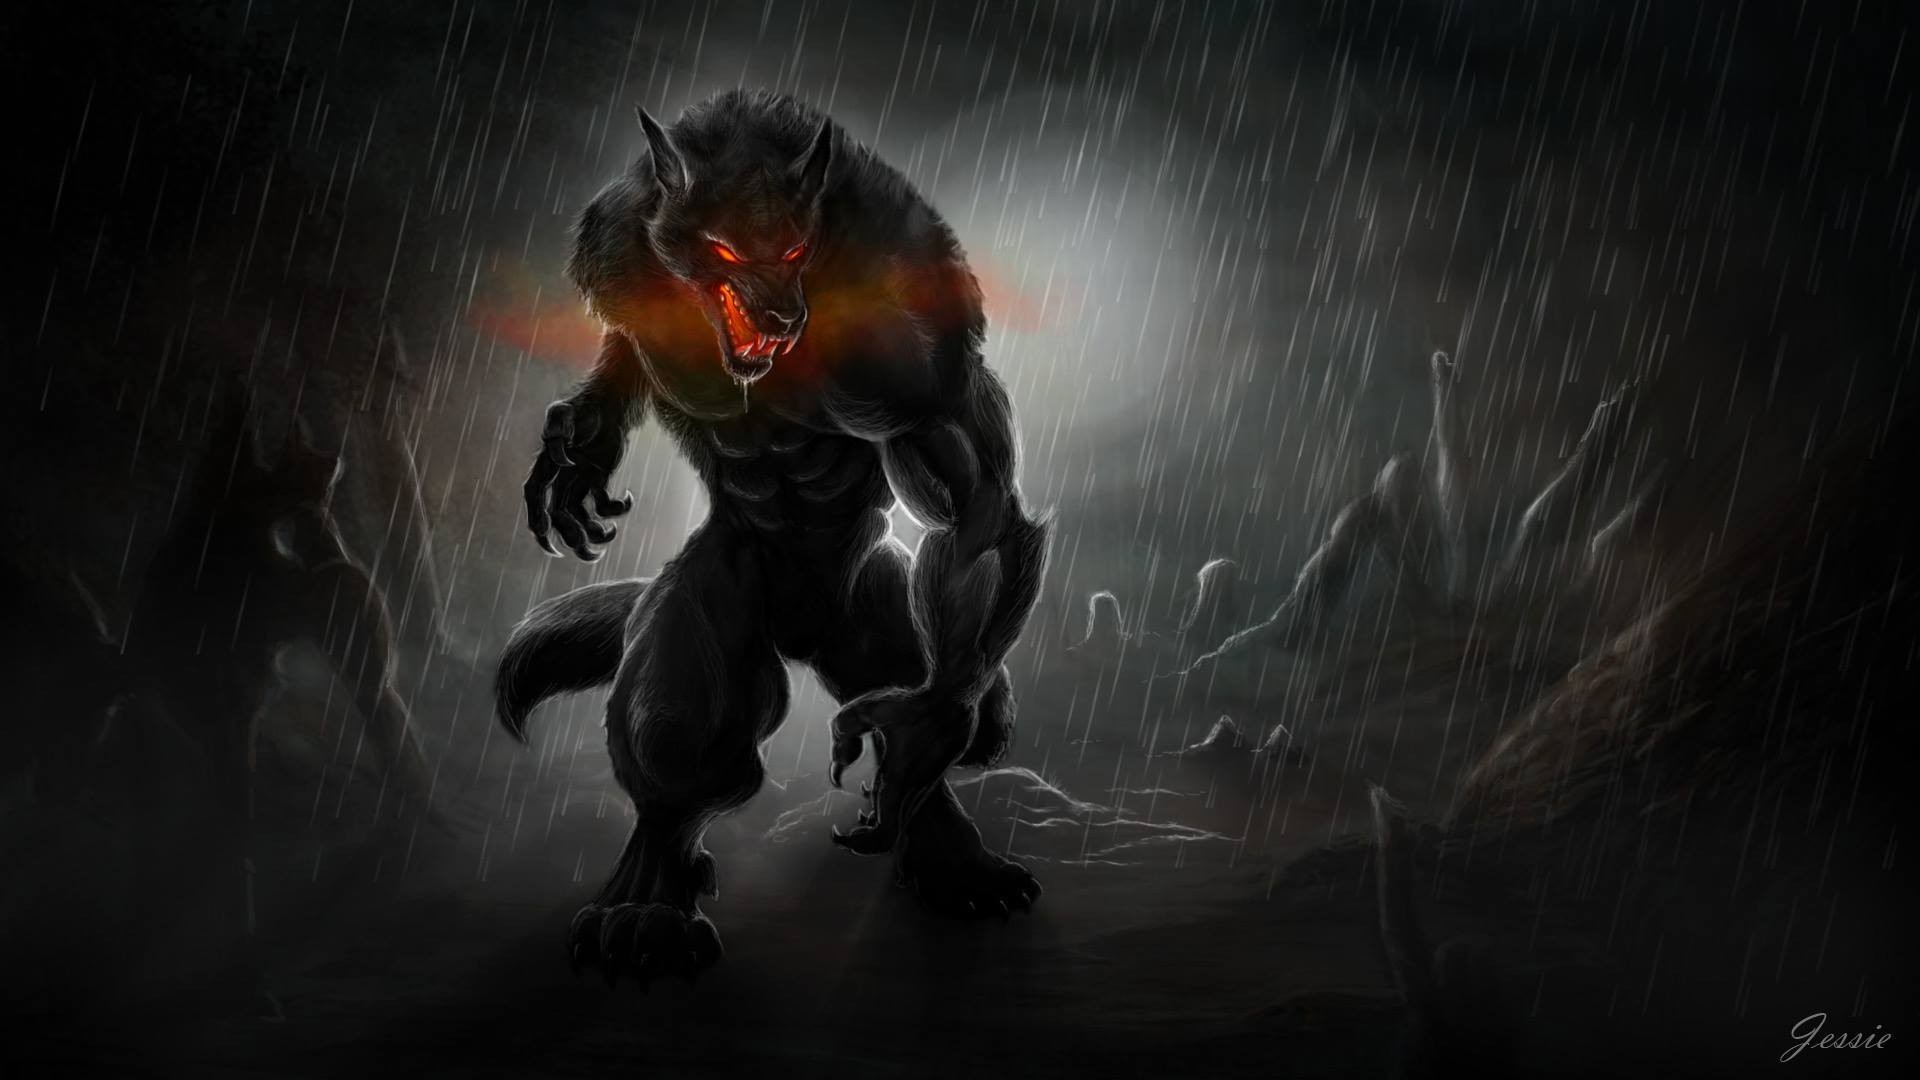 1920x1080 werewolves, Dark, Creature, Fantasy art Wallpapers HD / Desktop and Mobile  Backgrounds